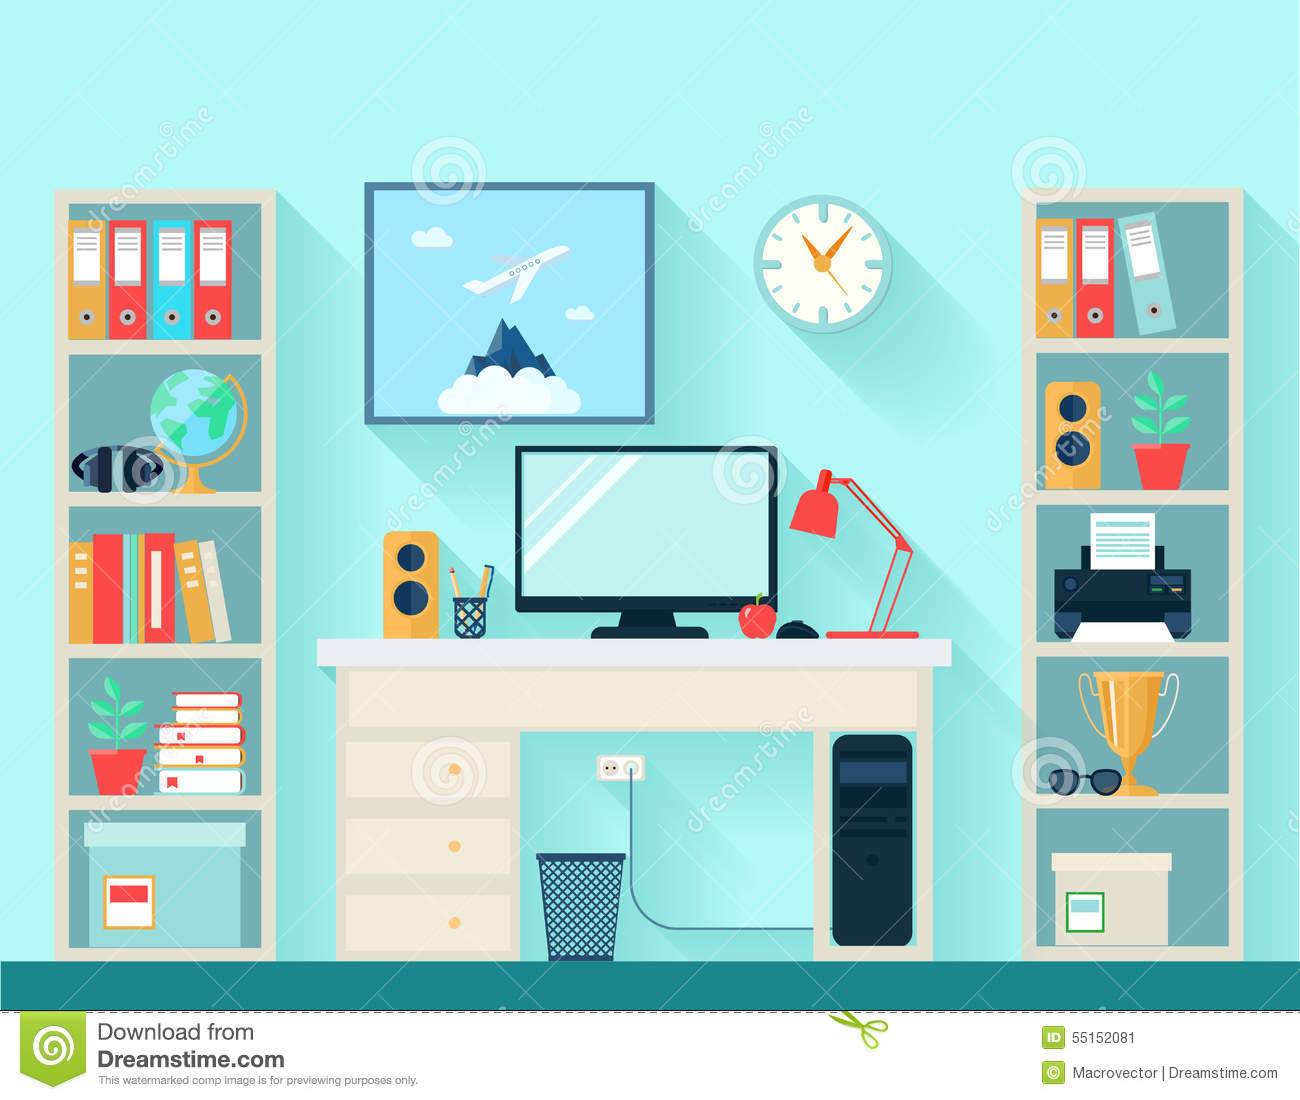 Workspace In Room With Computer Table And Bookshelves On Blue Wallpaper Background Flat Vector Illustration